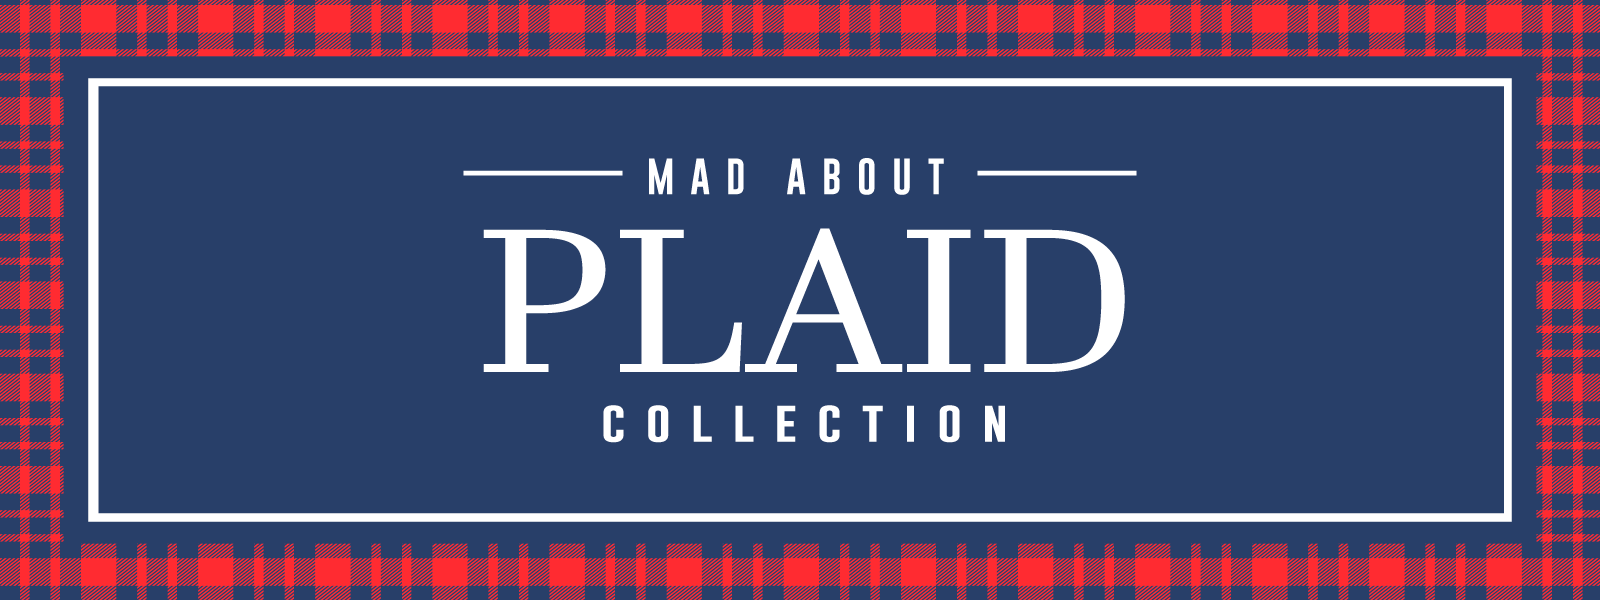 Mad About Plaid, Plaid Collection, Plaid Sale, Plaid tops, plaid shirts, women's plaid shirts, plaid women's shirts, buffalo plaid shirts, buffalo plaid shorts, buffalo plaid tops, country flannel, flannel tops, country girl style, country girl tops